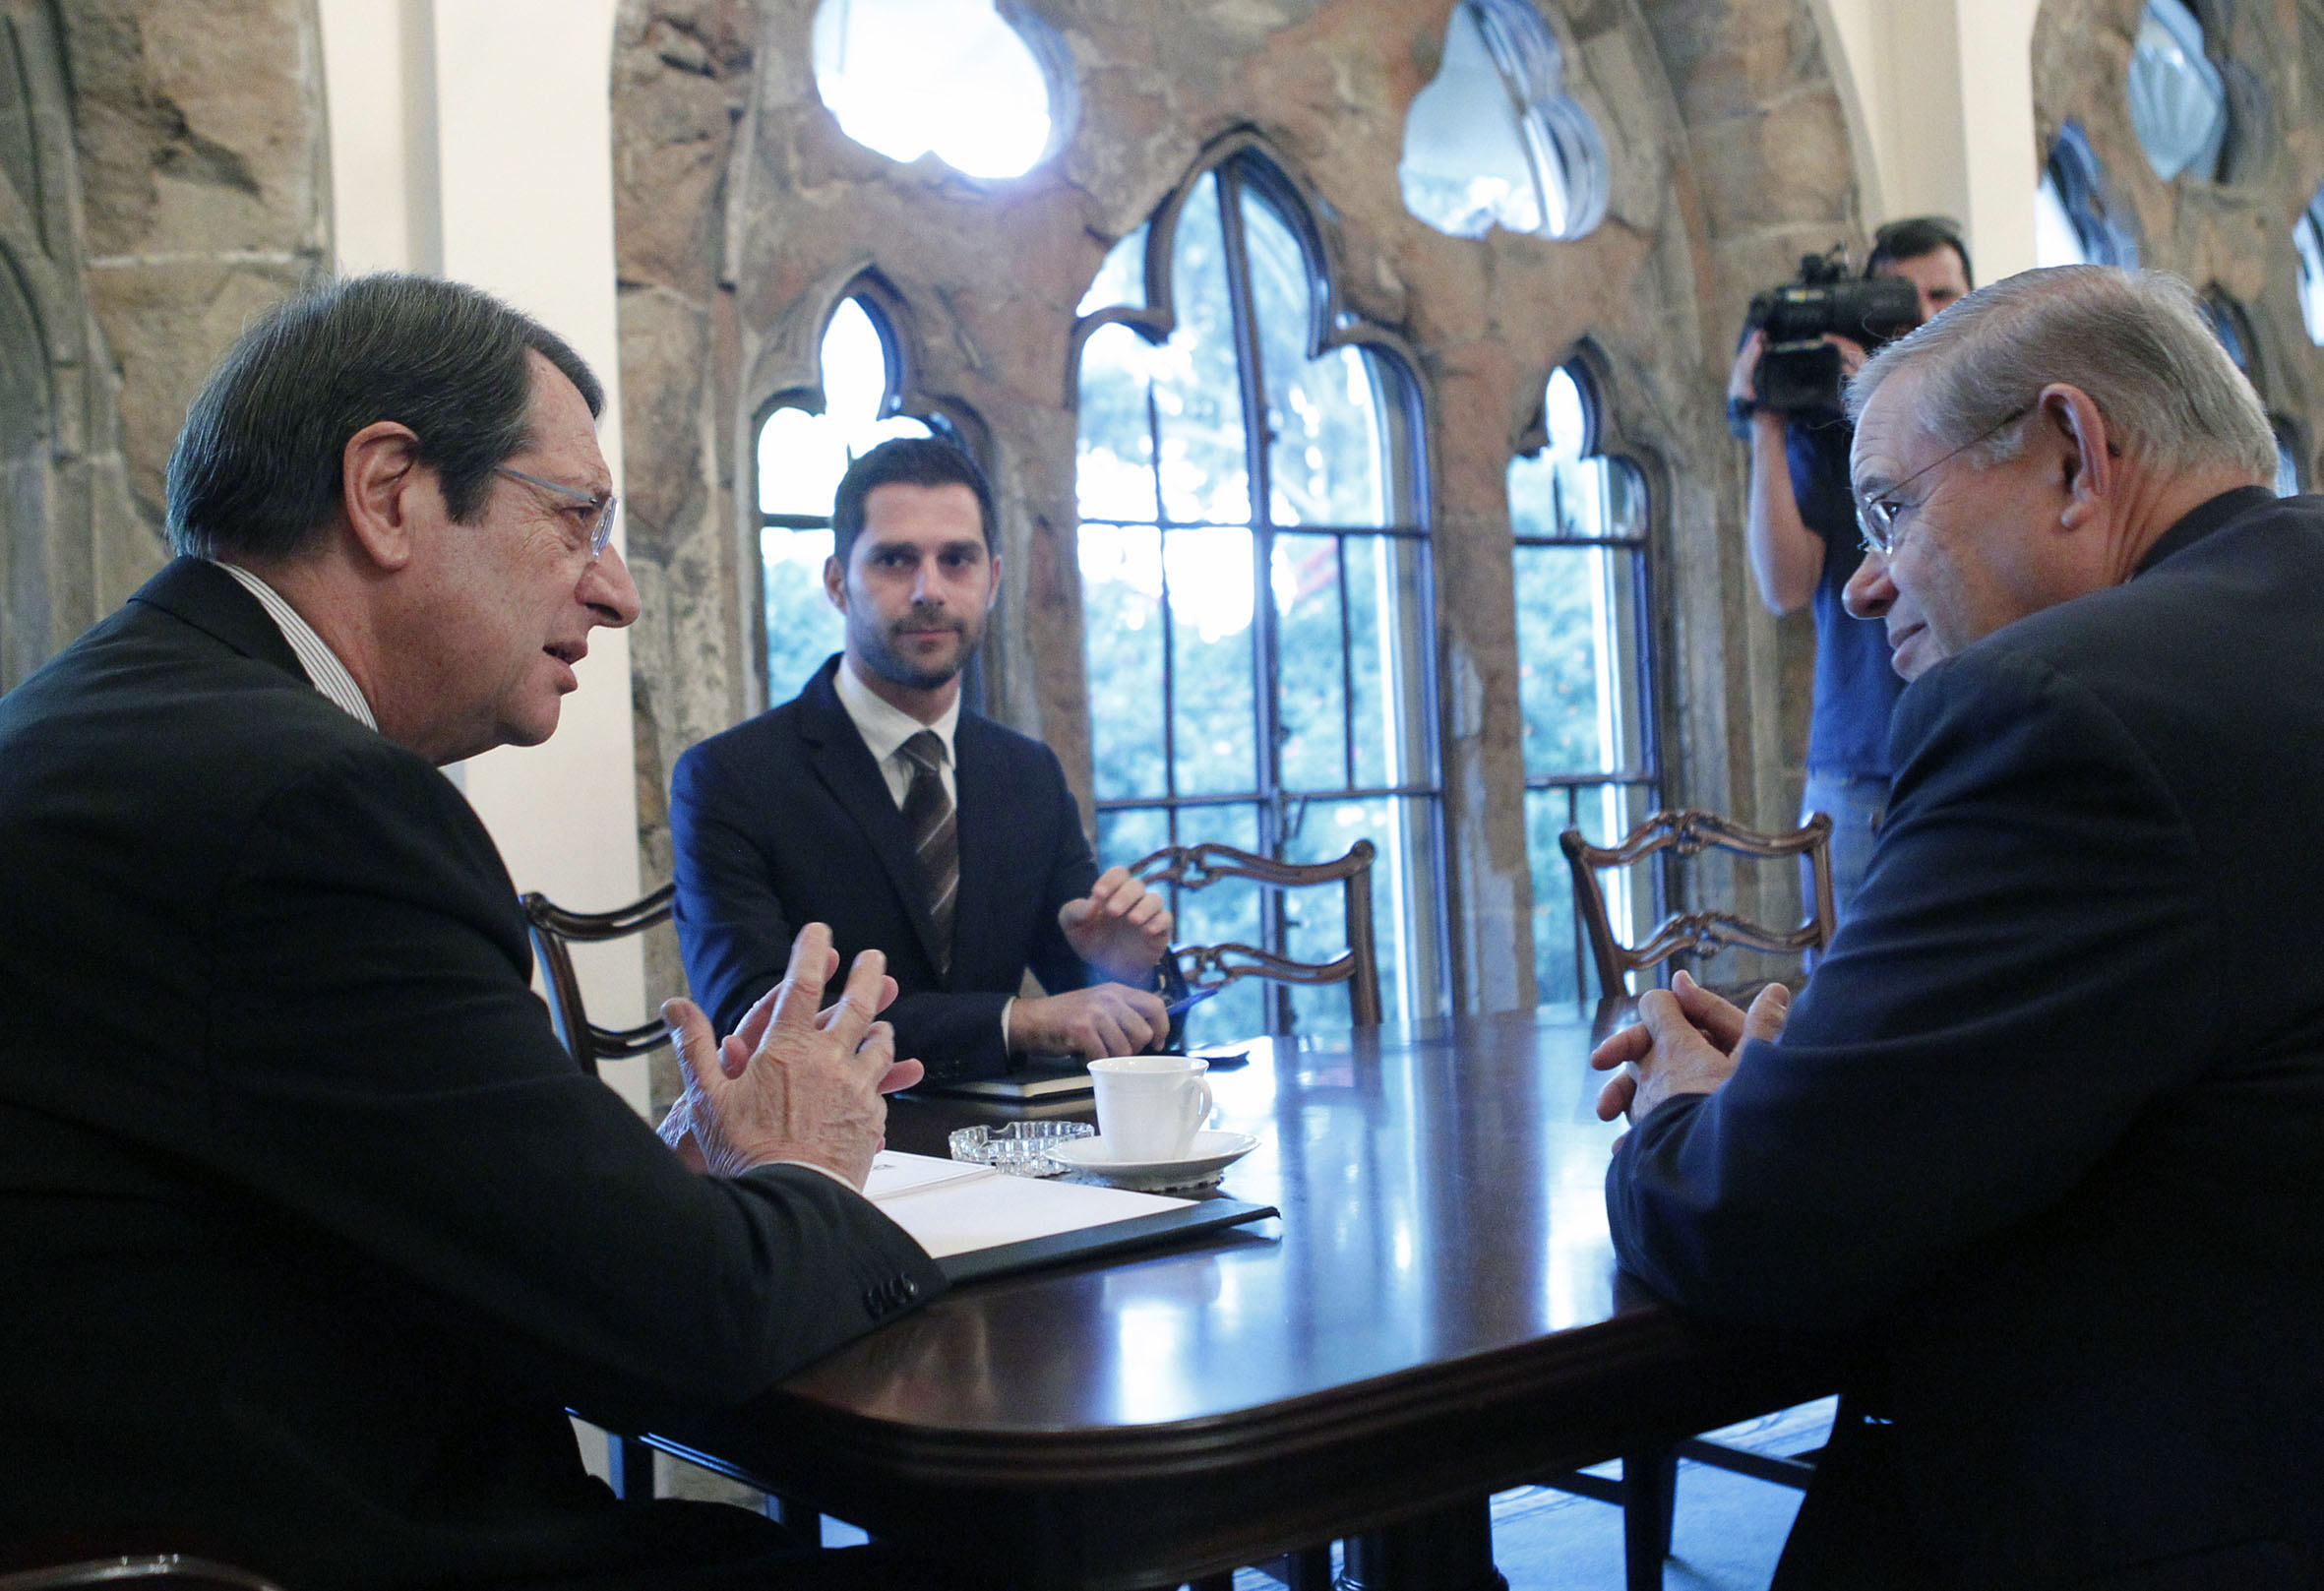 Step-by-step lifting of the arms embargo on Cyprus